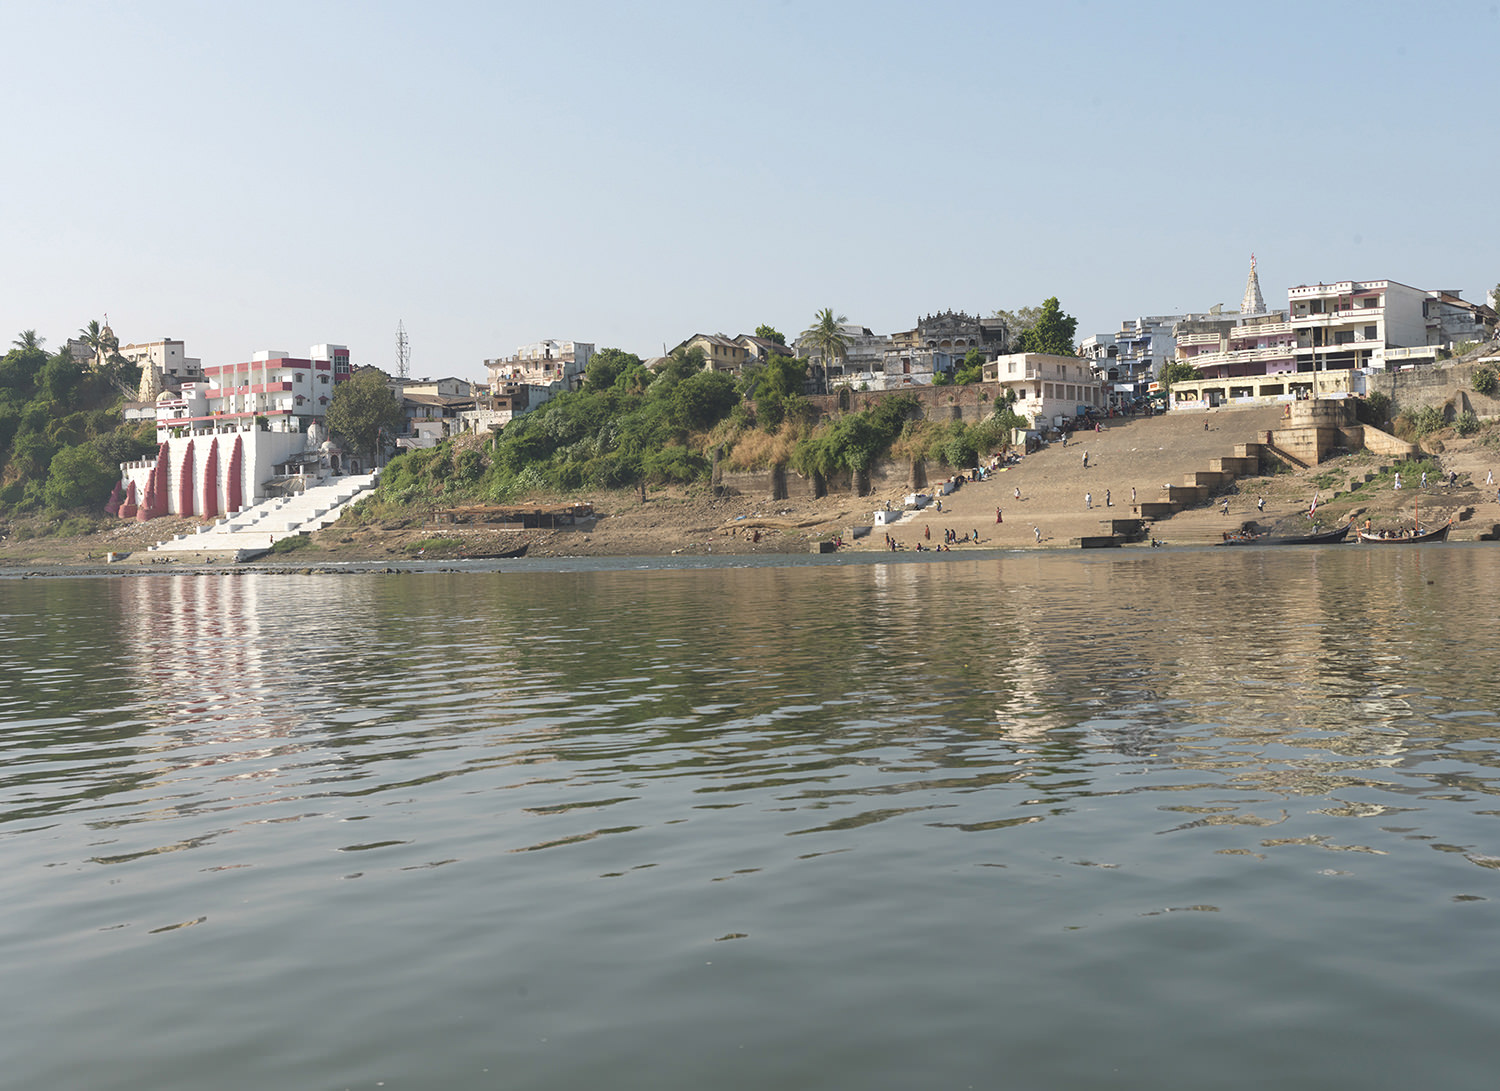 Chandod - River Confluence